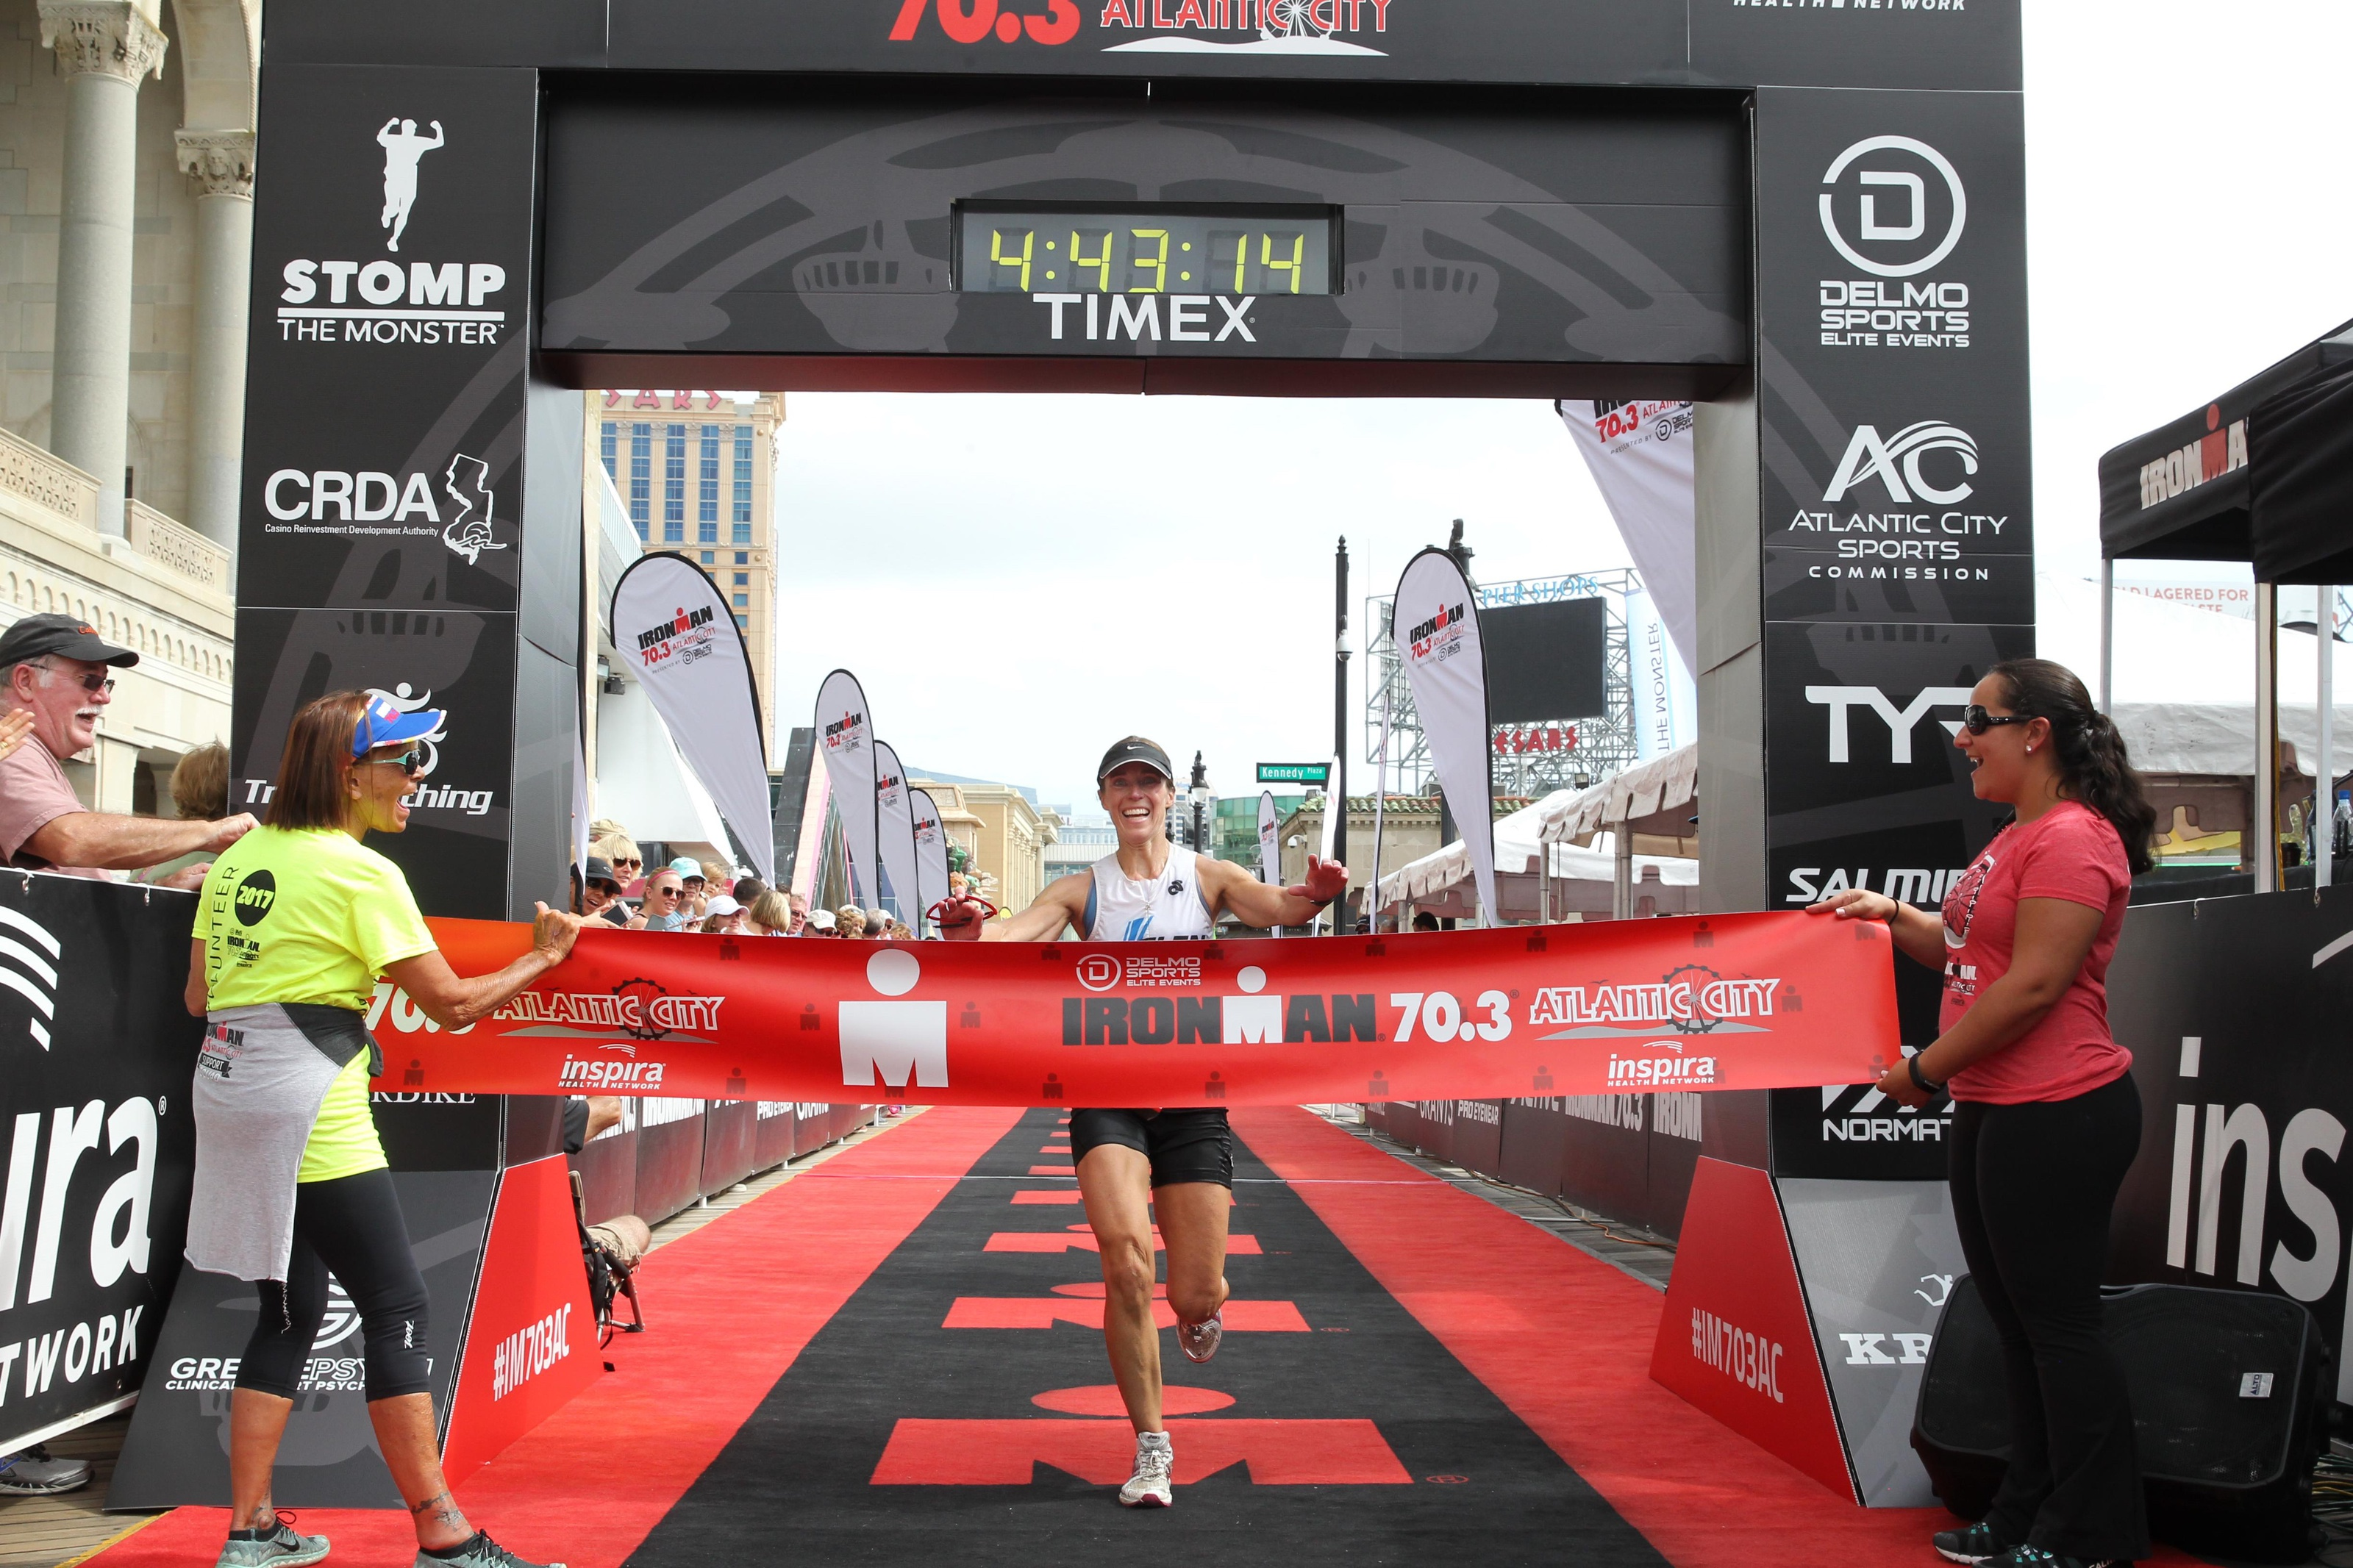 finish - Ironman 70.3 Atlantic City